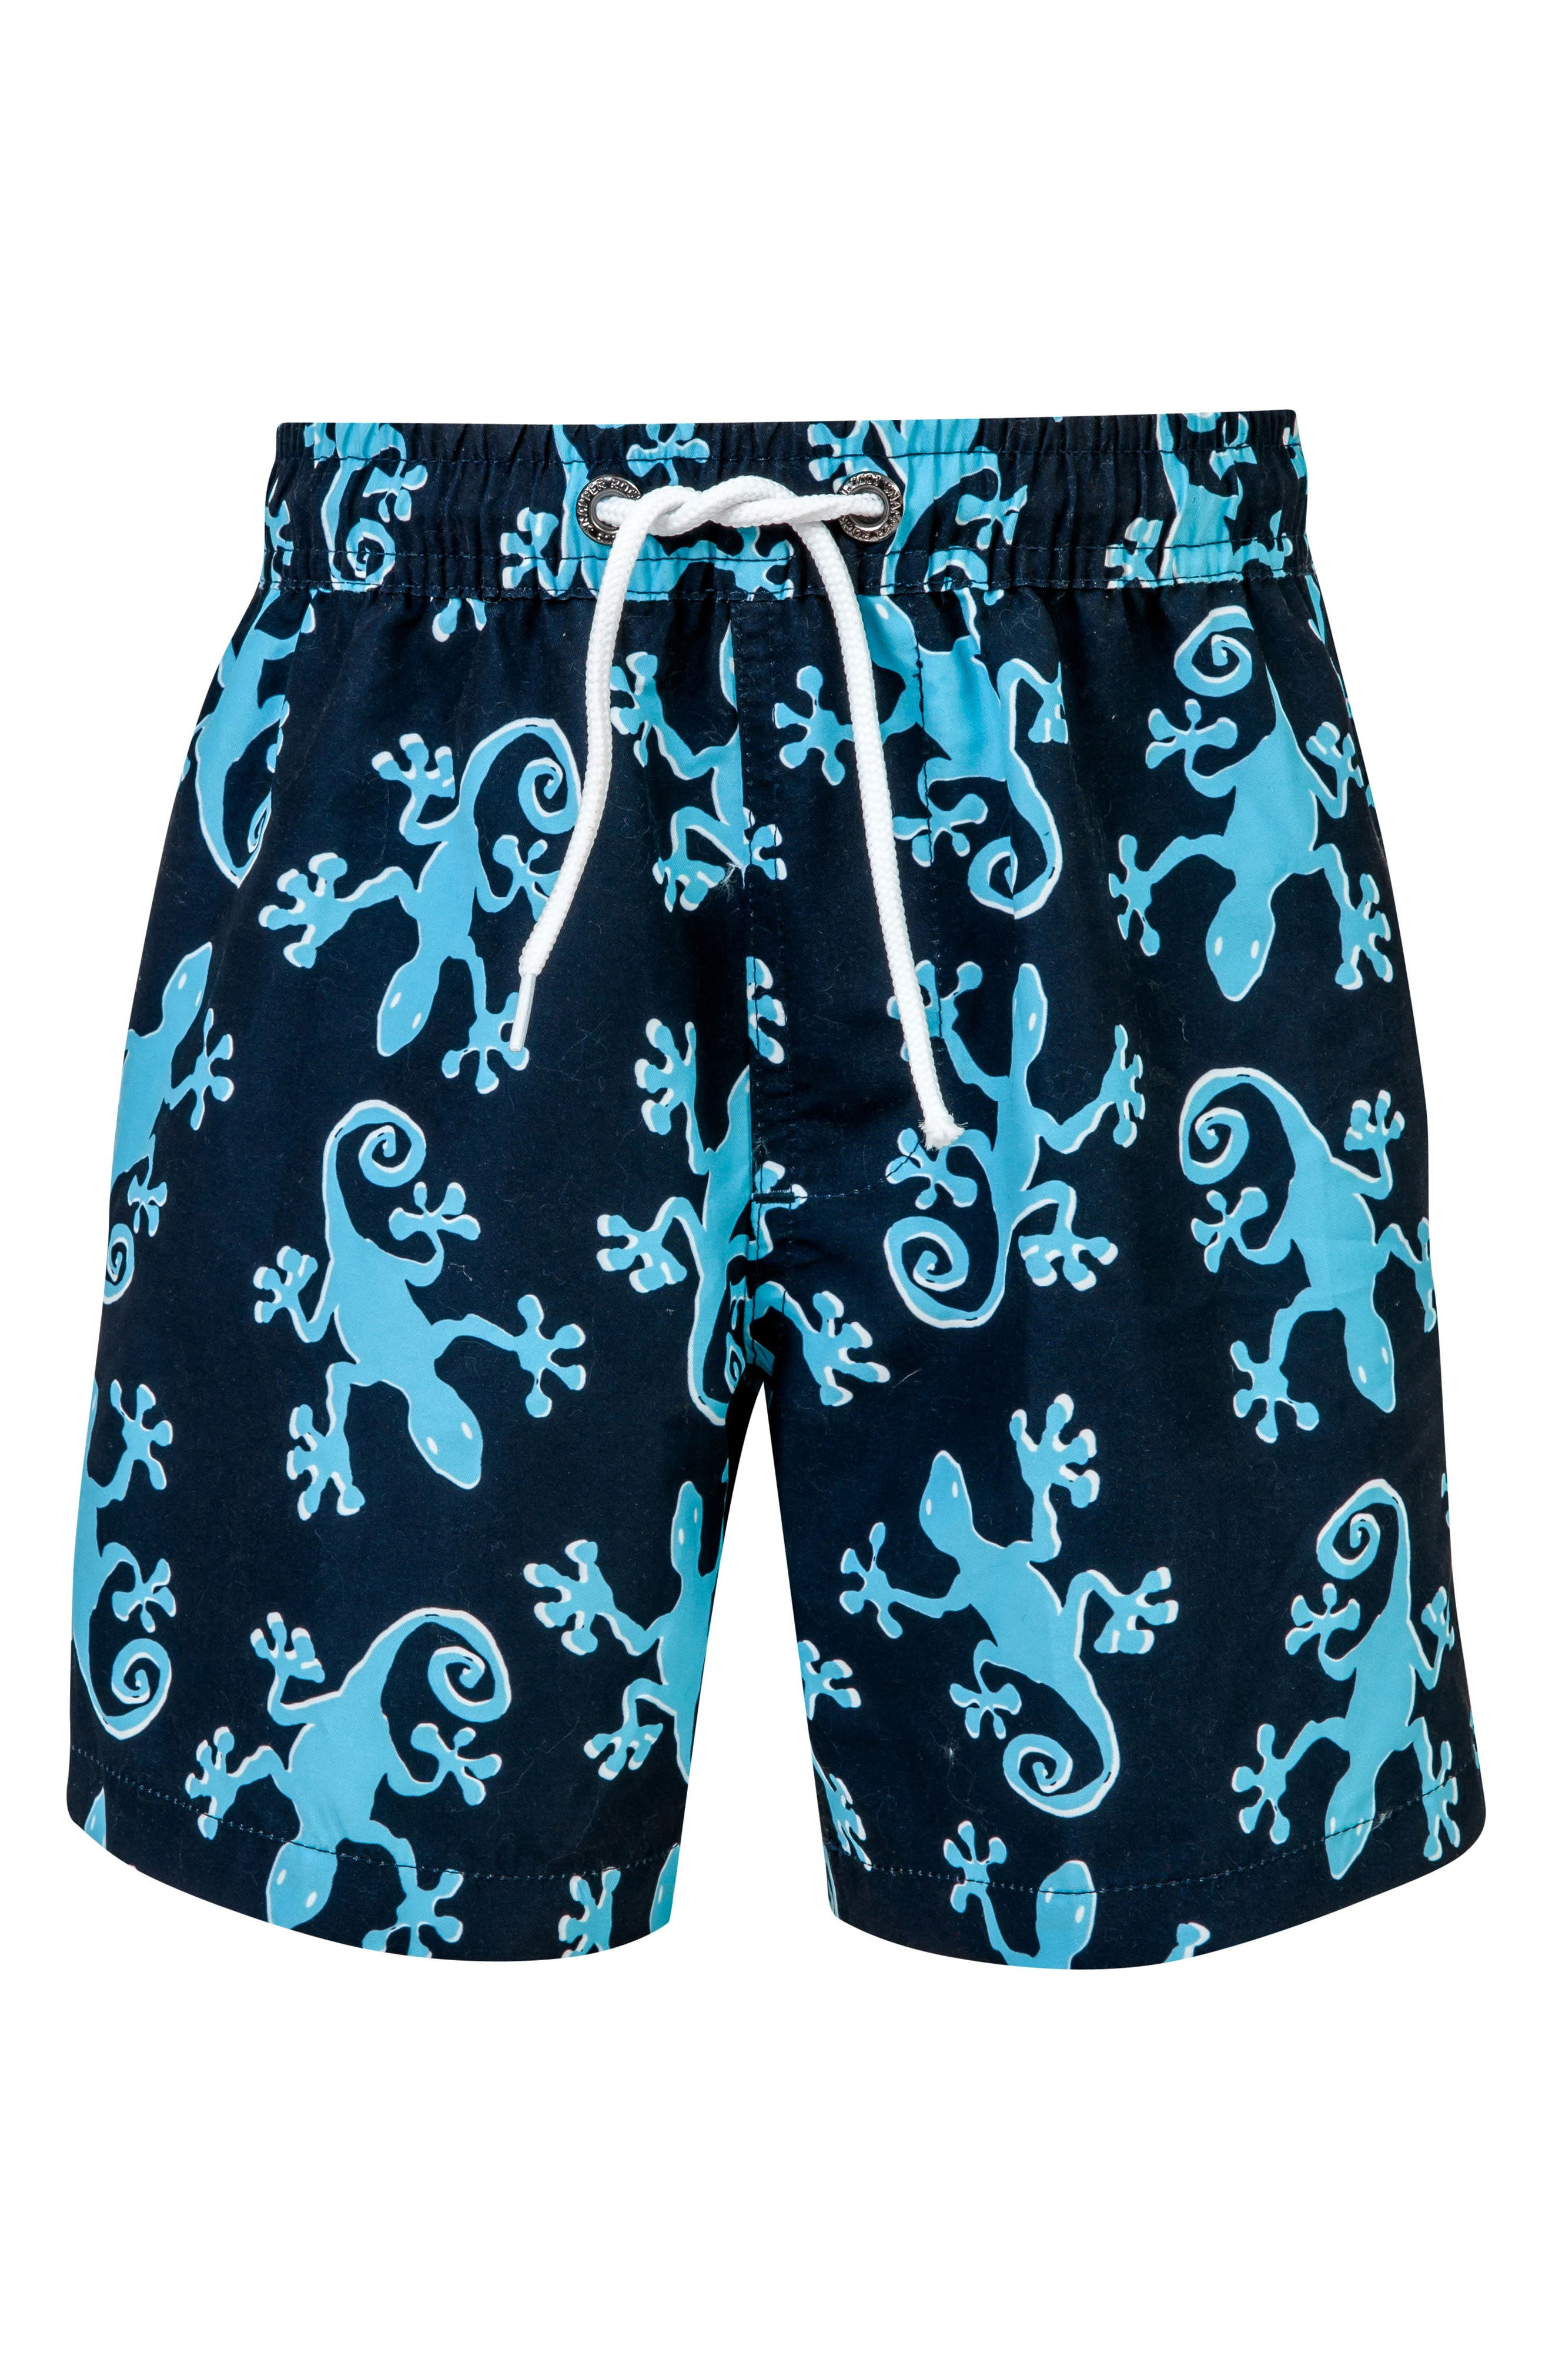 Gecko Board Shorts,                         Main,                         color, NAVY/ AQUA